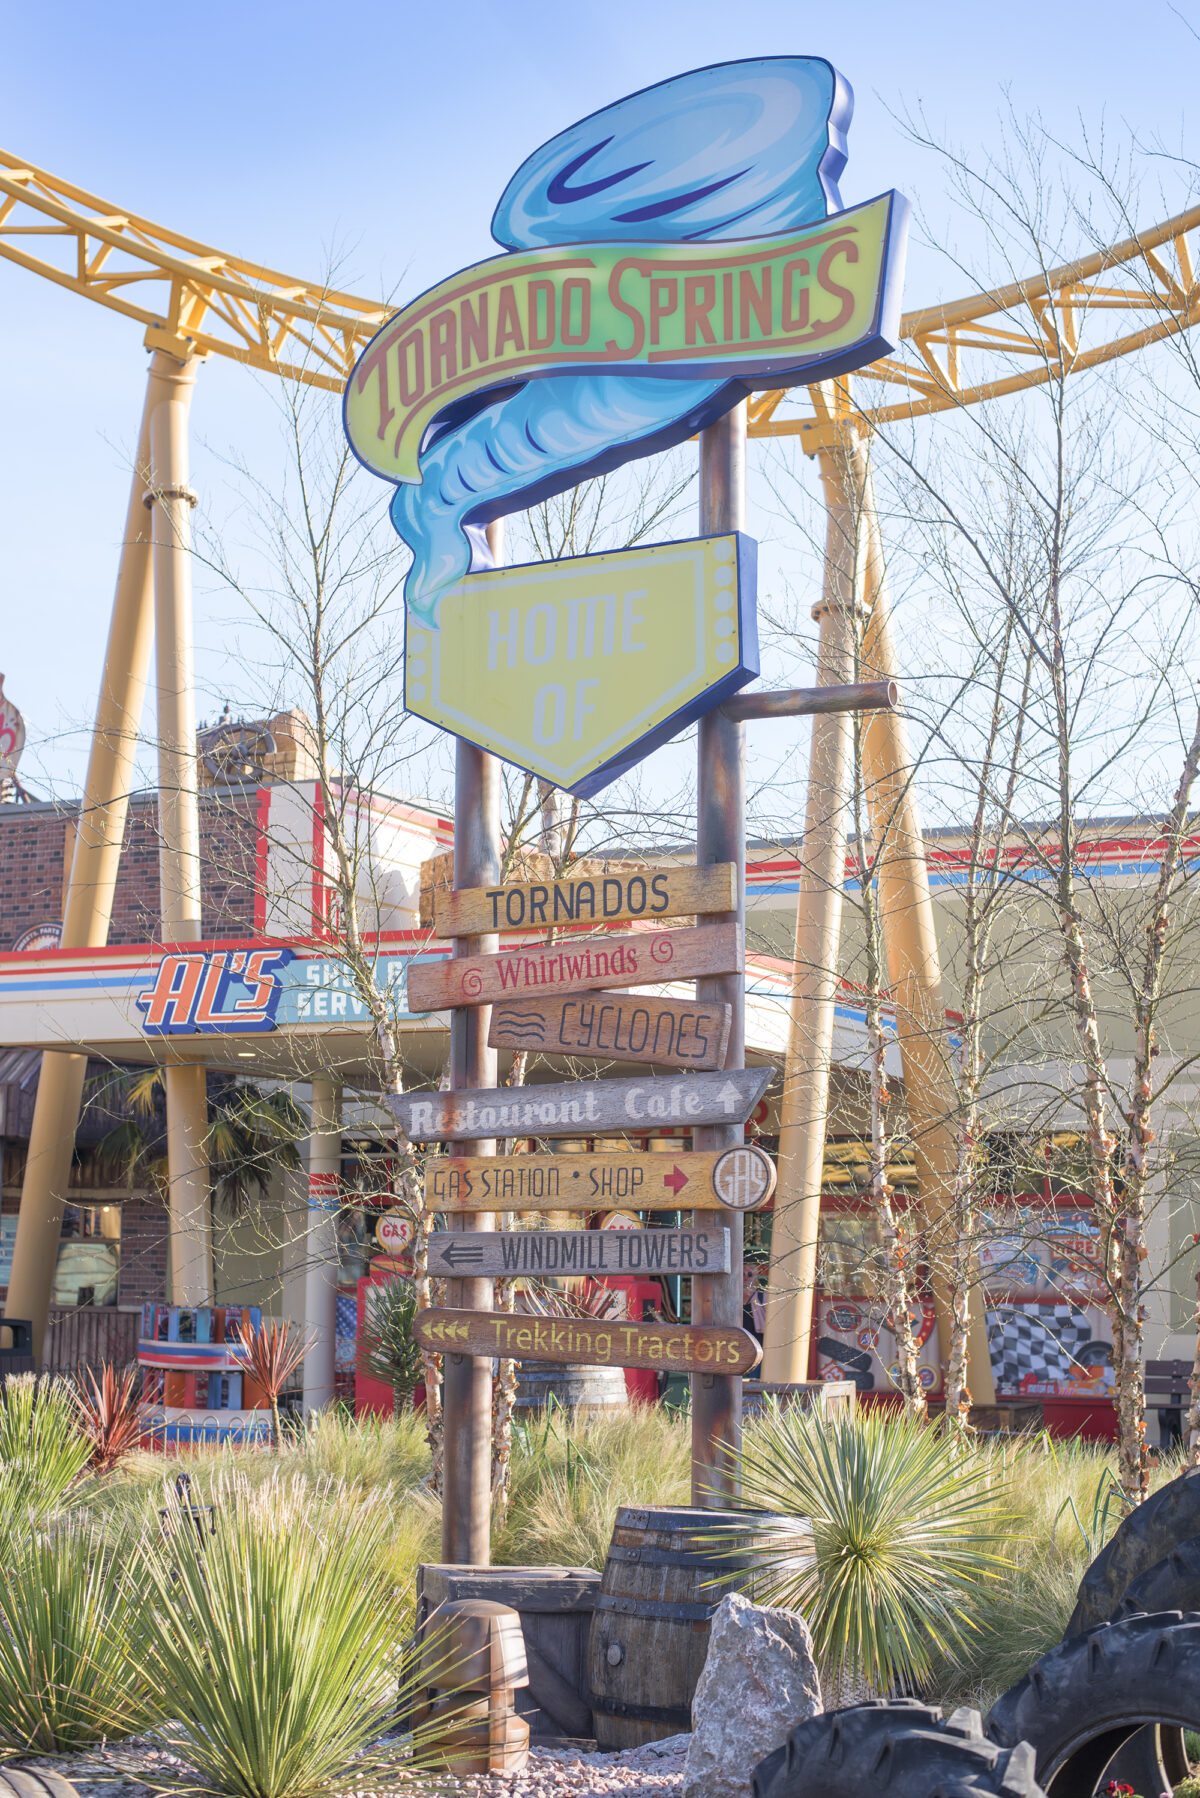 Image shows the main signpost in Paultons Park Tornado Springs area of the theme park in Hampshire, england.